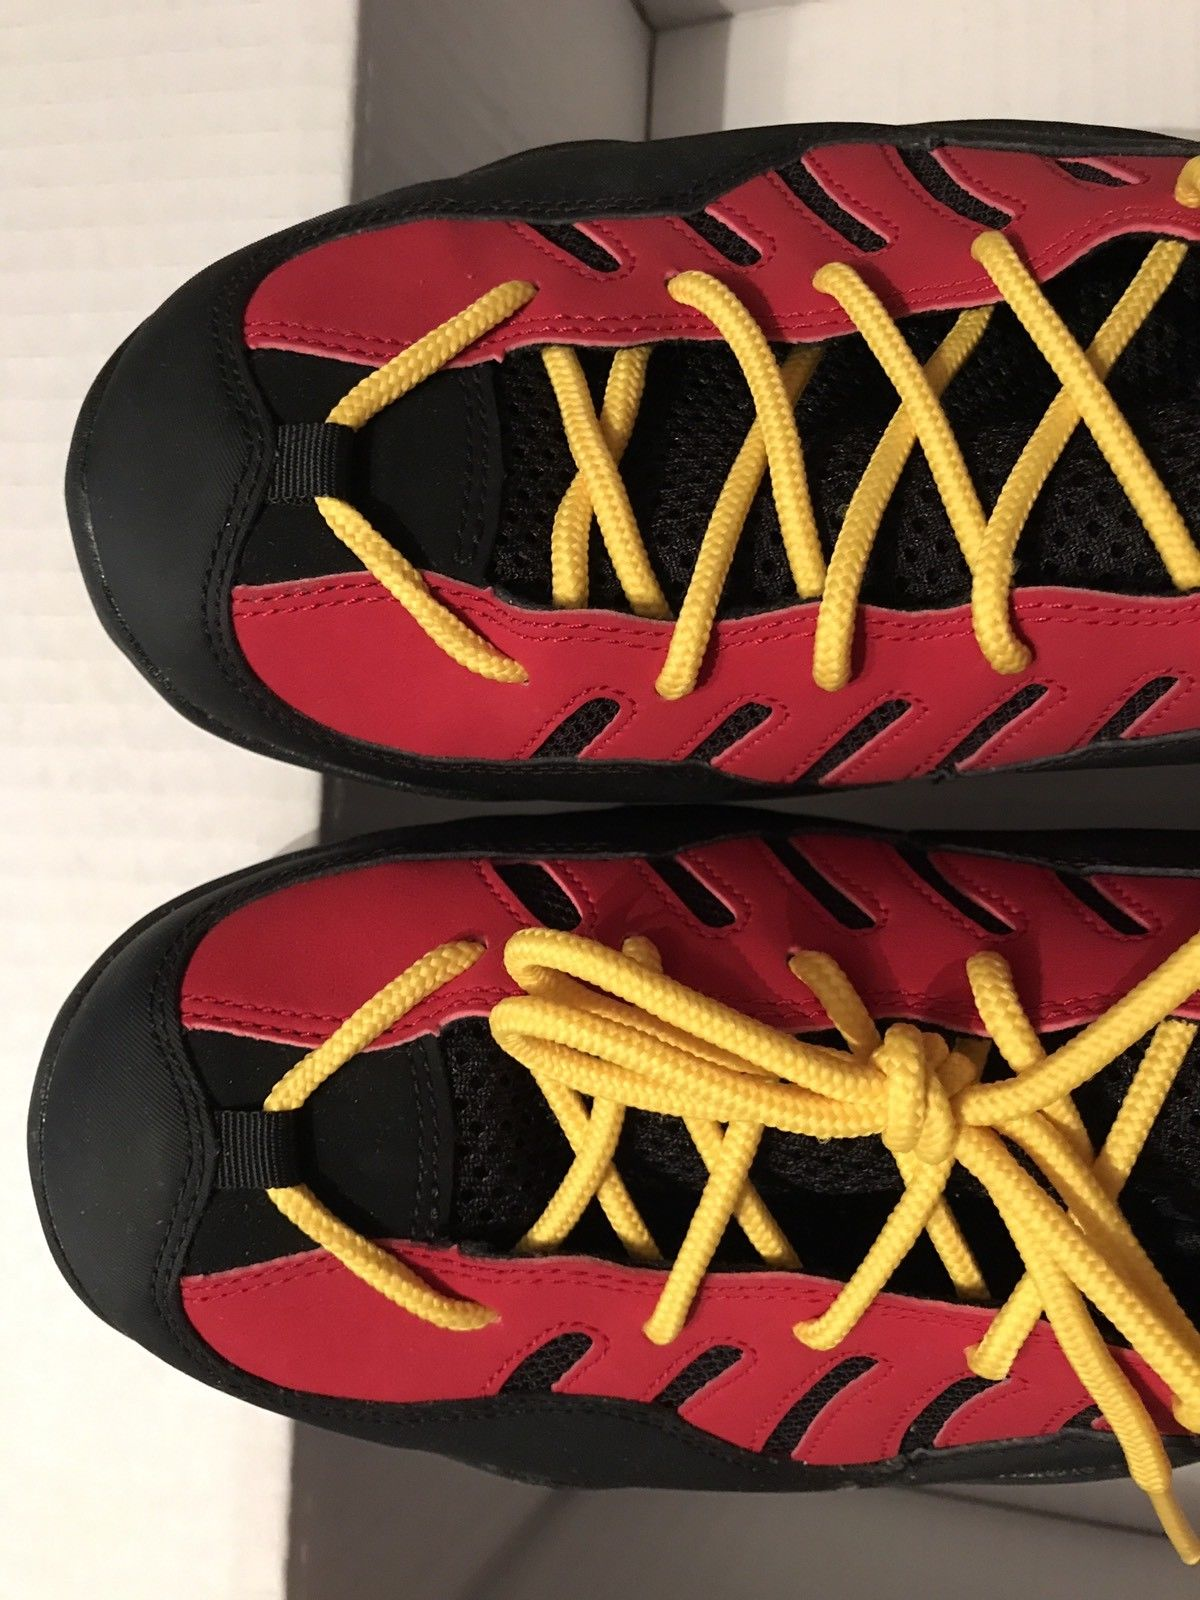 Image of NIKE AIR BAKIN - Size 13 - Color: Black/Red New DS-Rare New